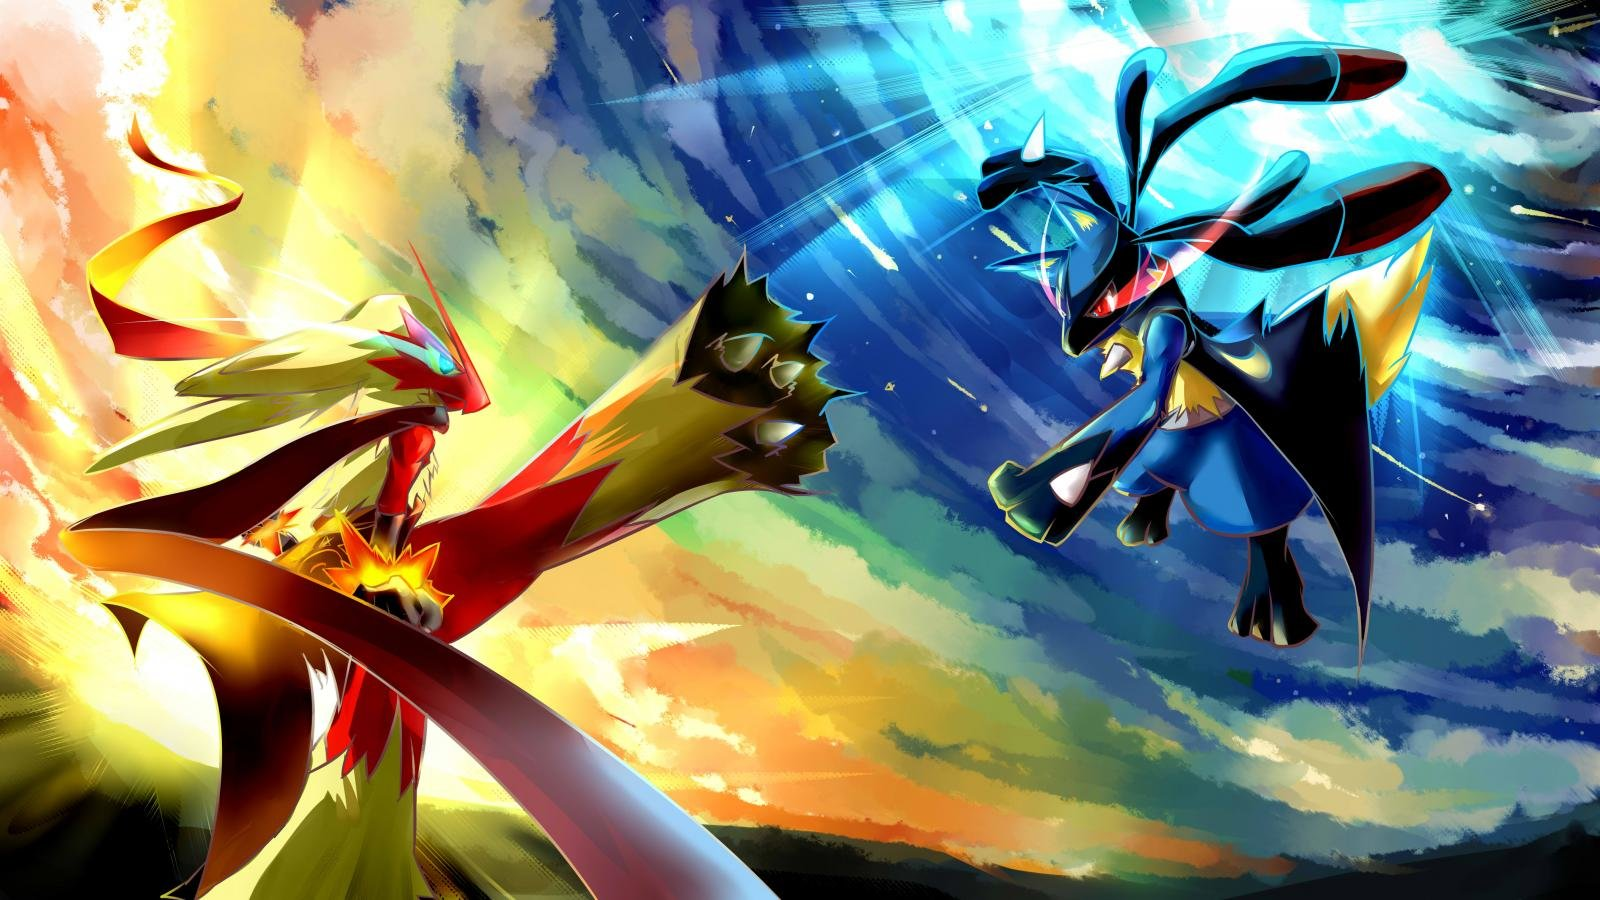 Free Download Blaziken Pokemon Background ID278521 Hd 1600x900 For PC